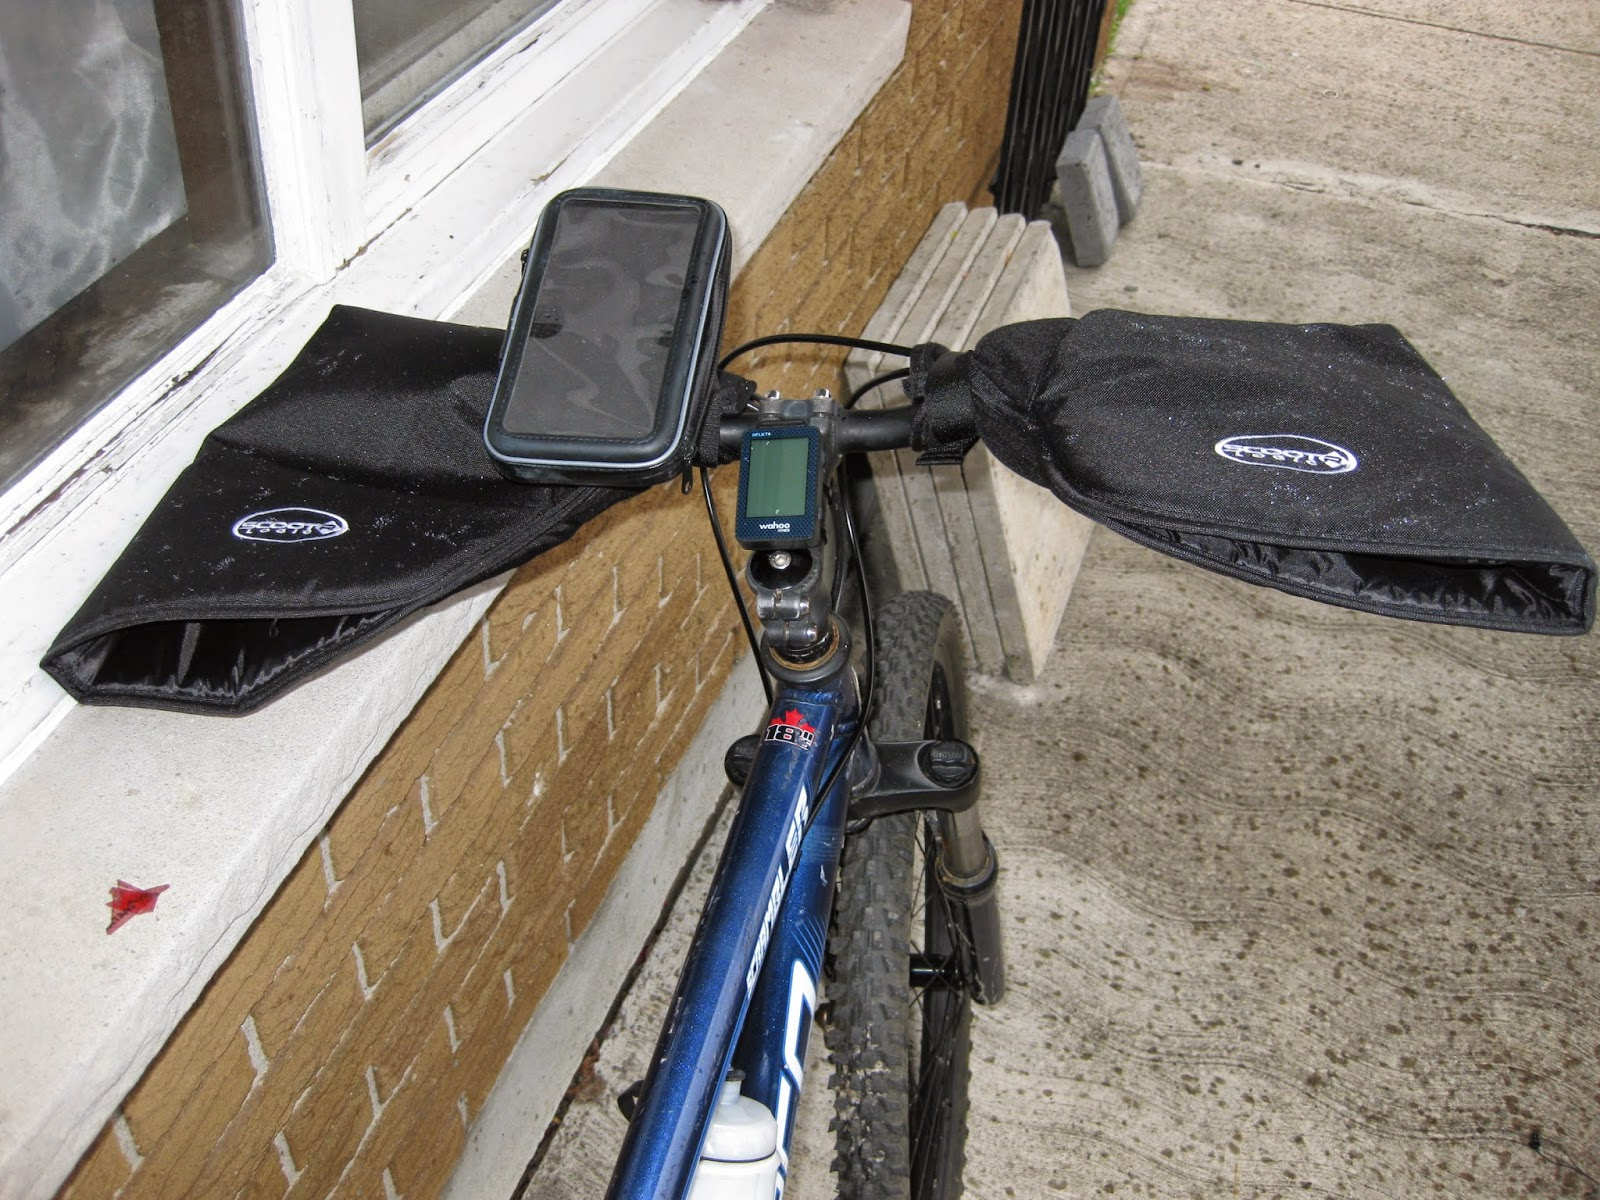 Pogies on the handlebars with a smartphone mount for a large smartphone.